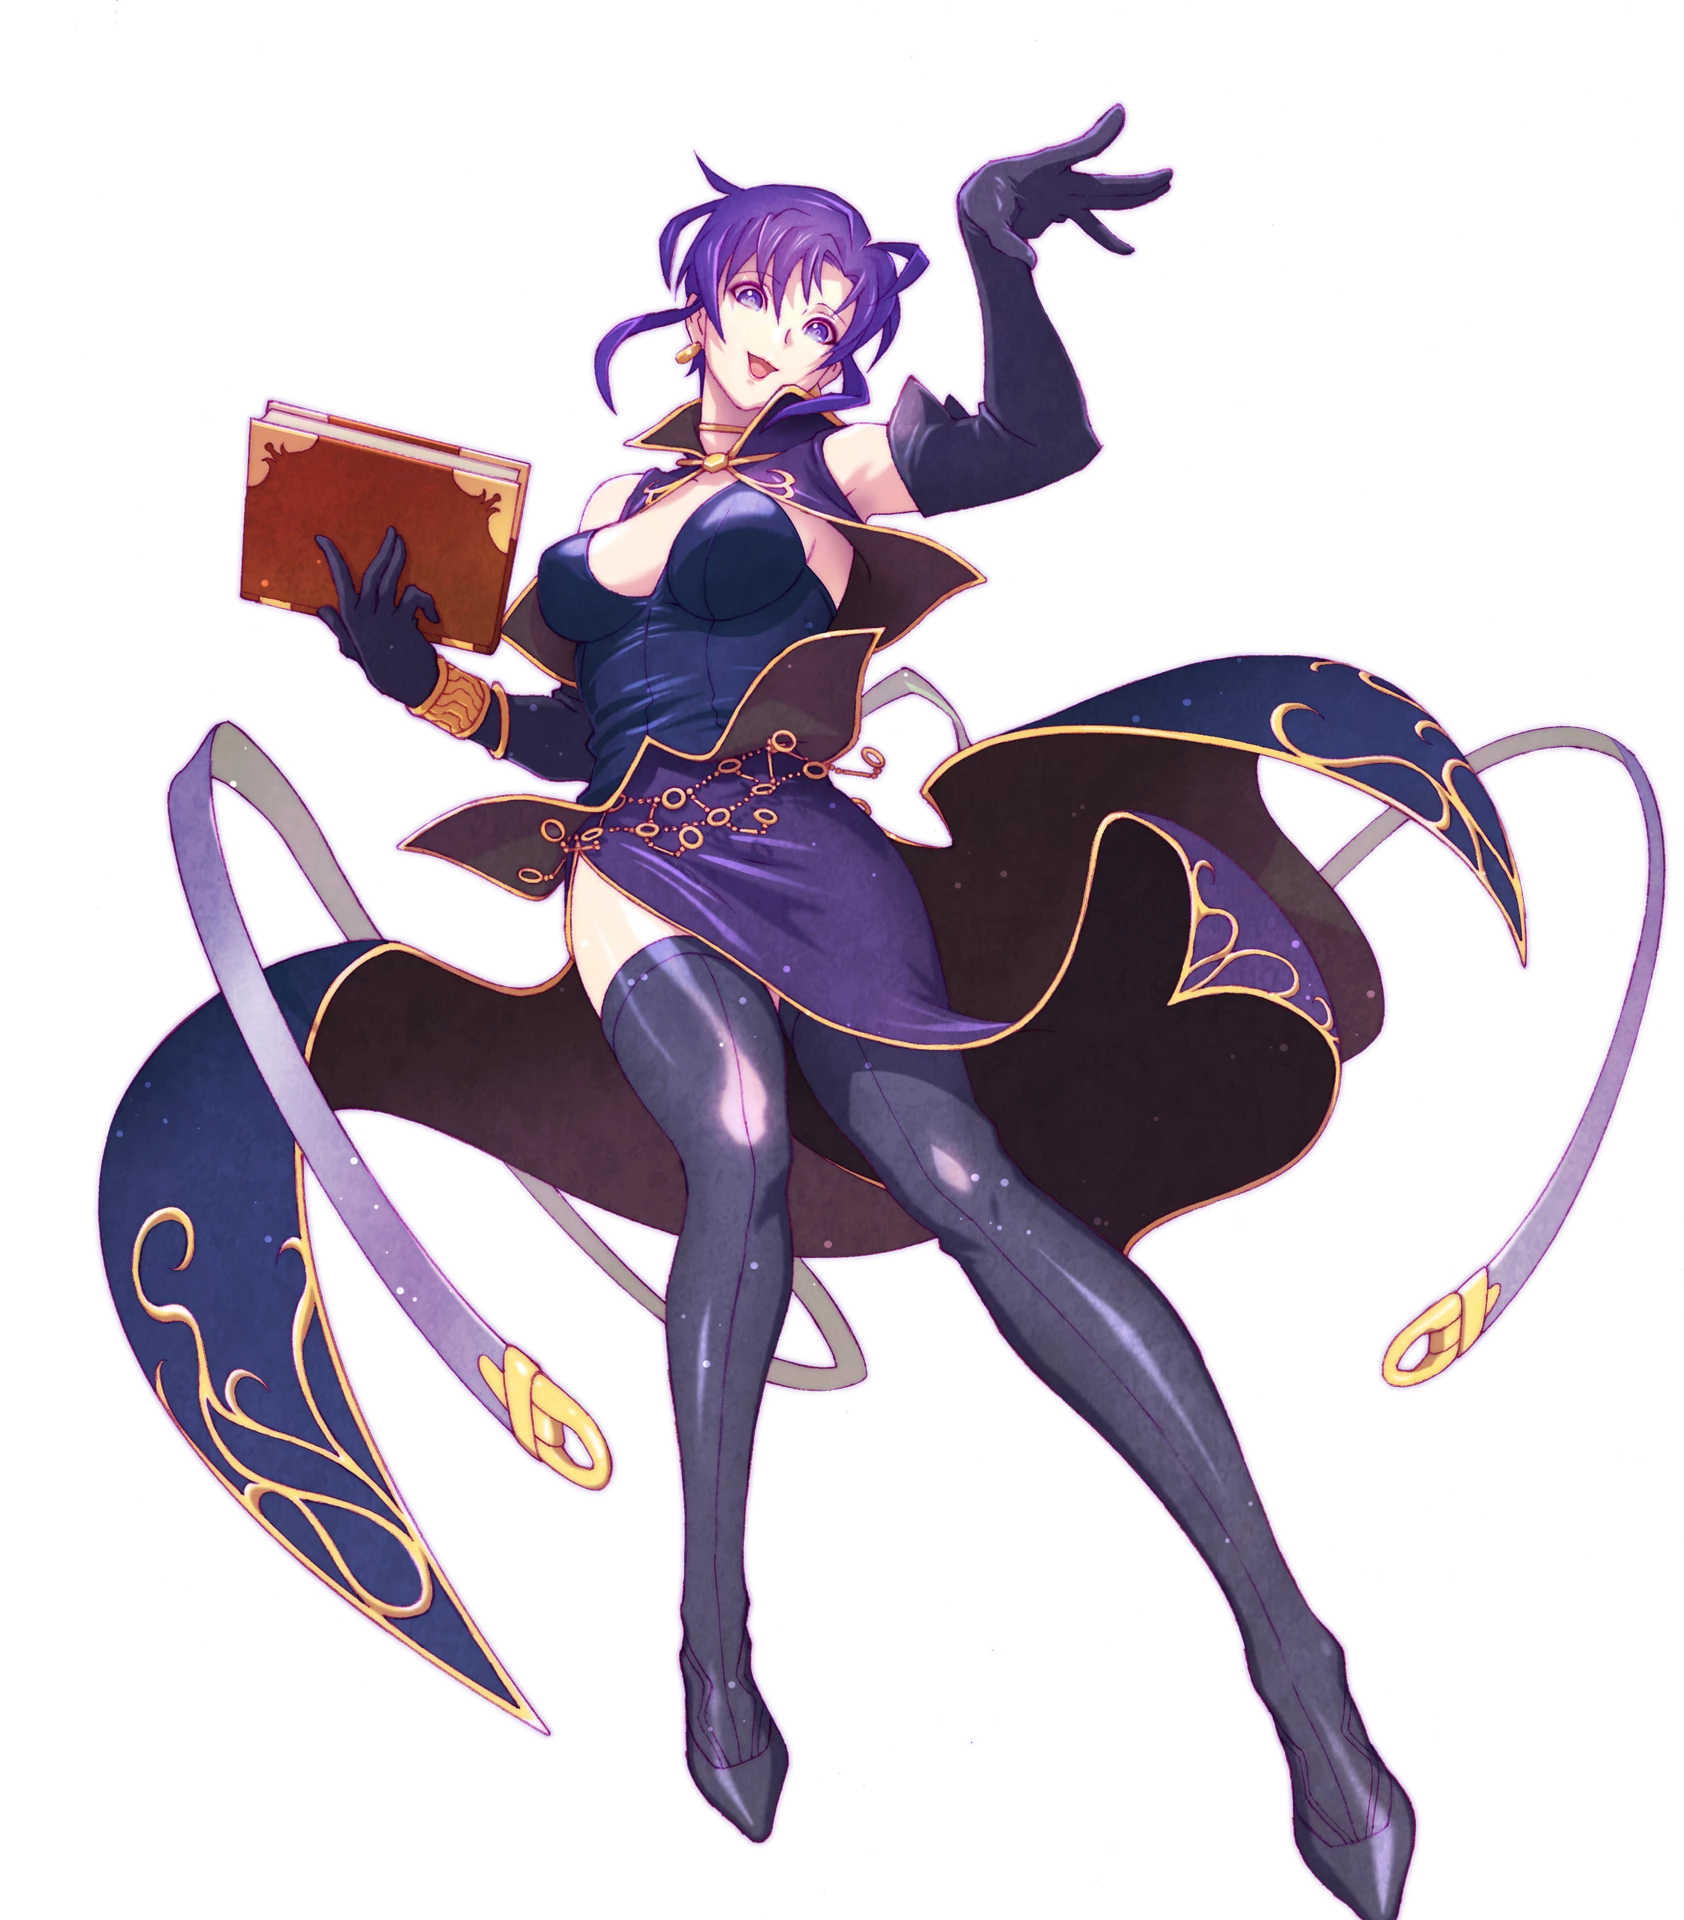 image library download Ursula drawing costume. Fire emblem heroes video